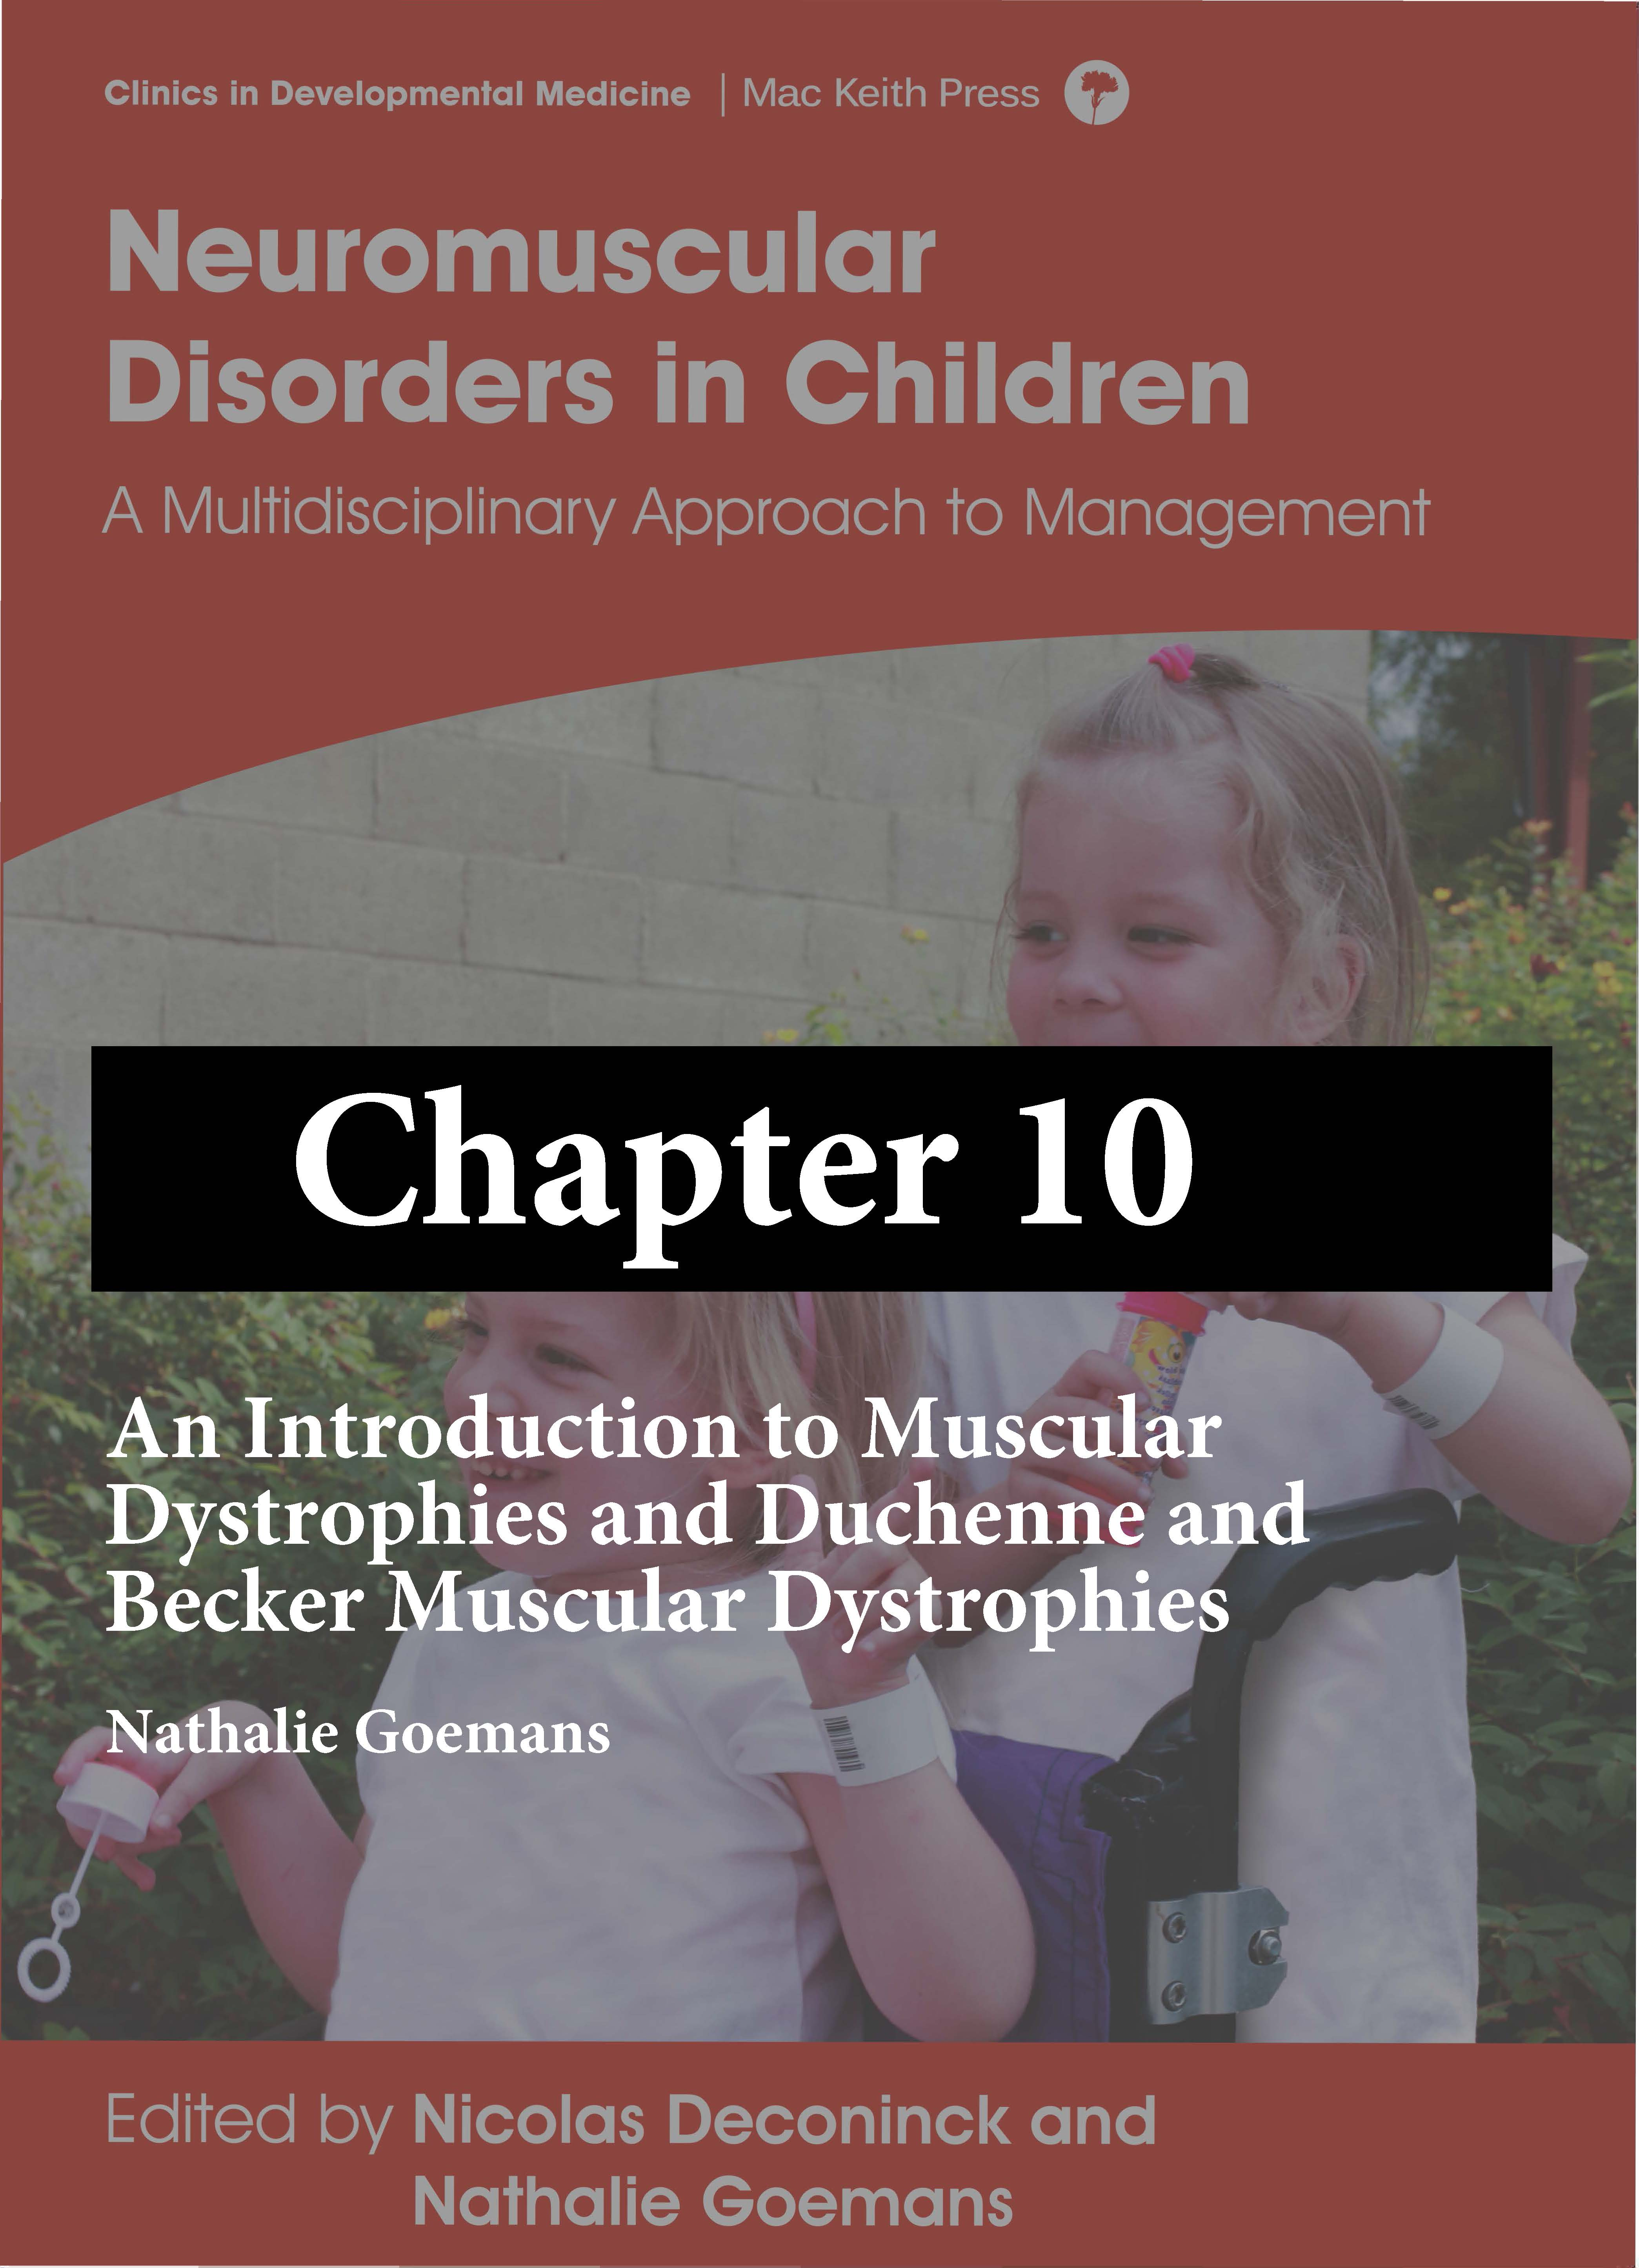 Neuromuscular Disorders in Children chapter 10